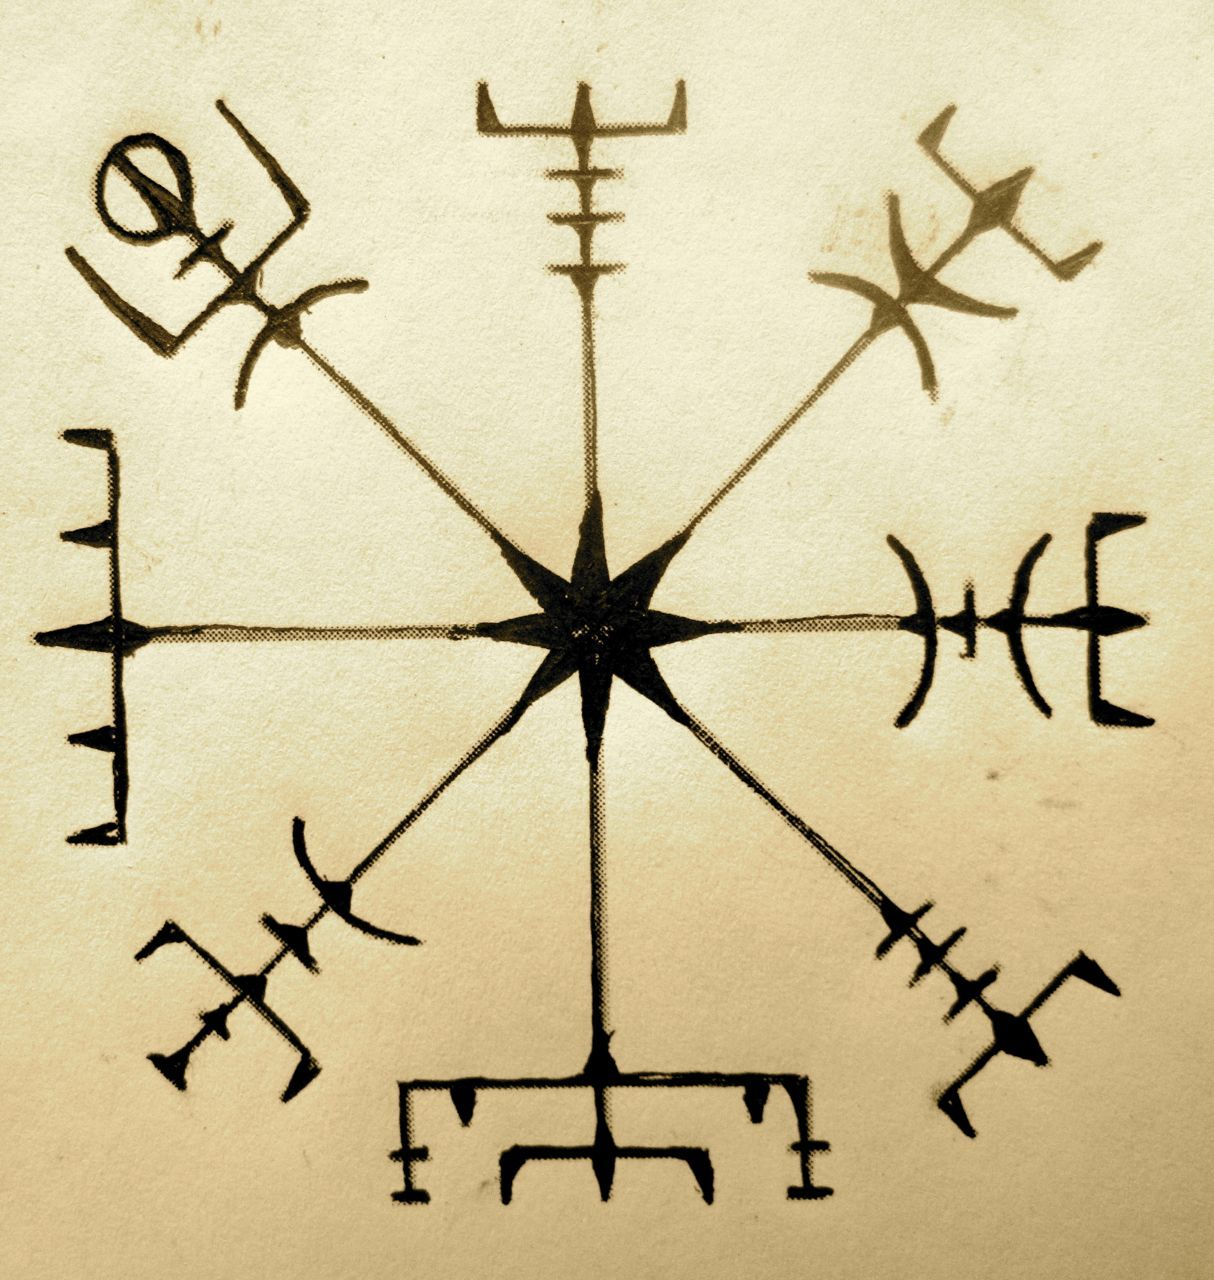 Runic Compass Preventng From Getting Lostvegvisir The Icelandic